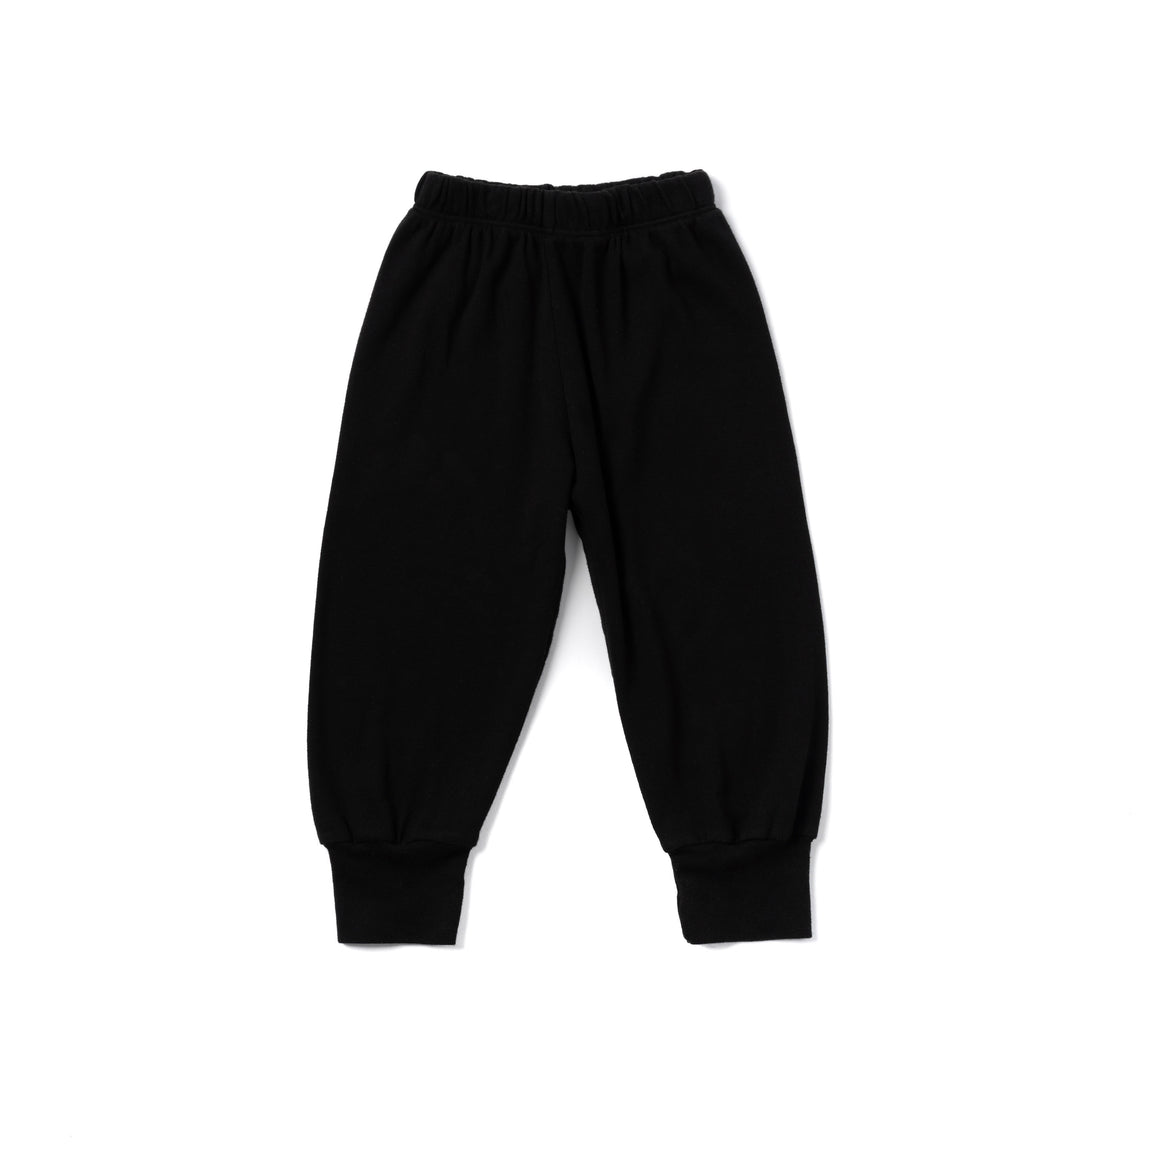 Black Bubble Pants